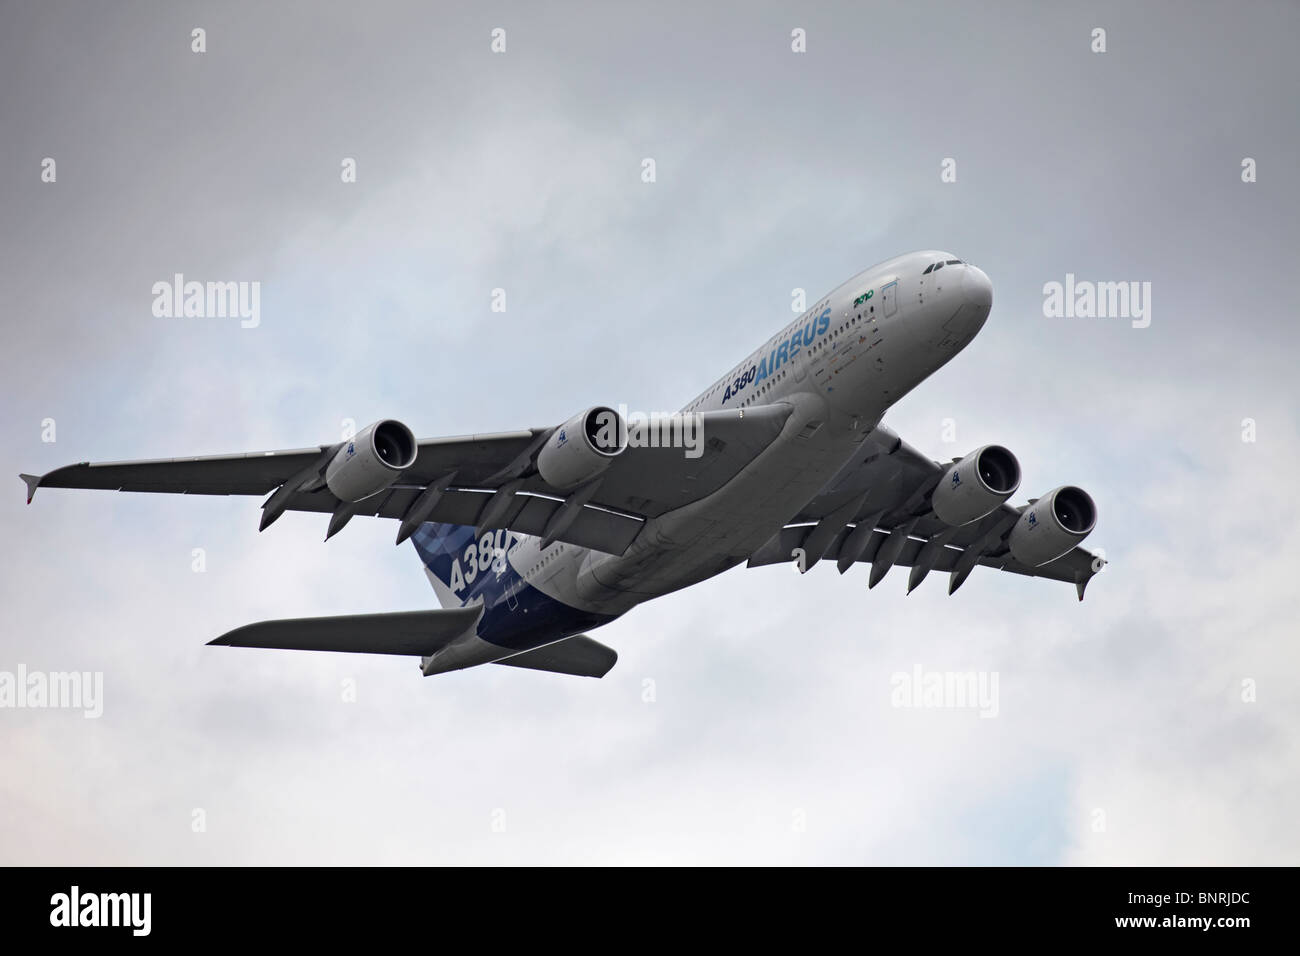 Farnborough Airbus A380 - Stock Image